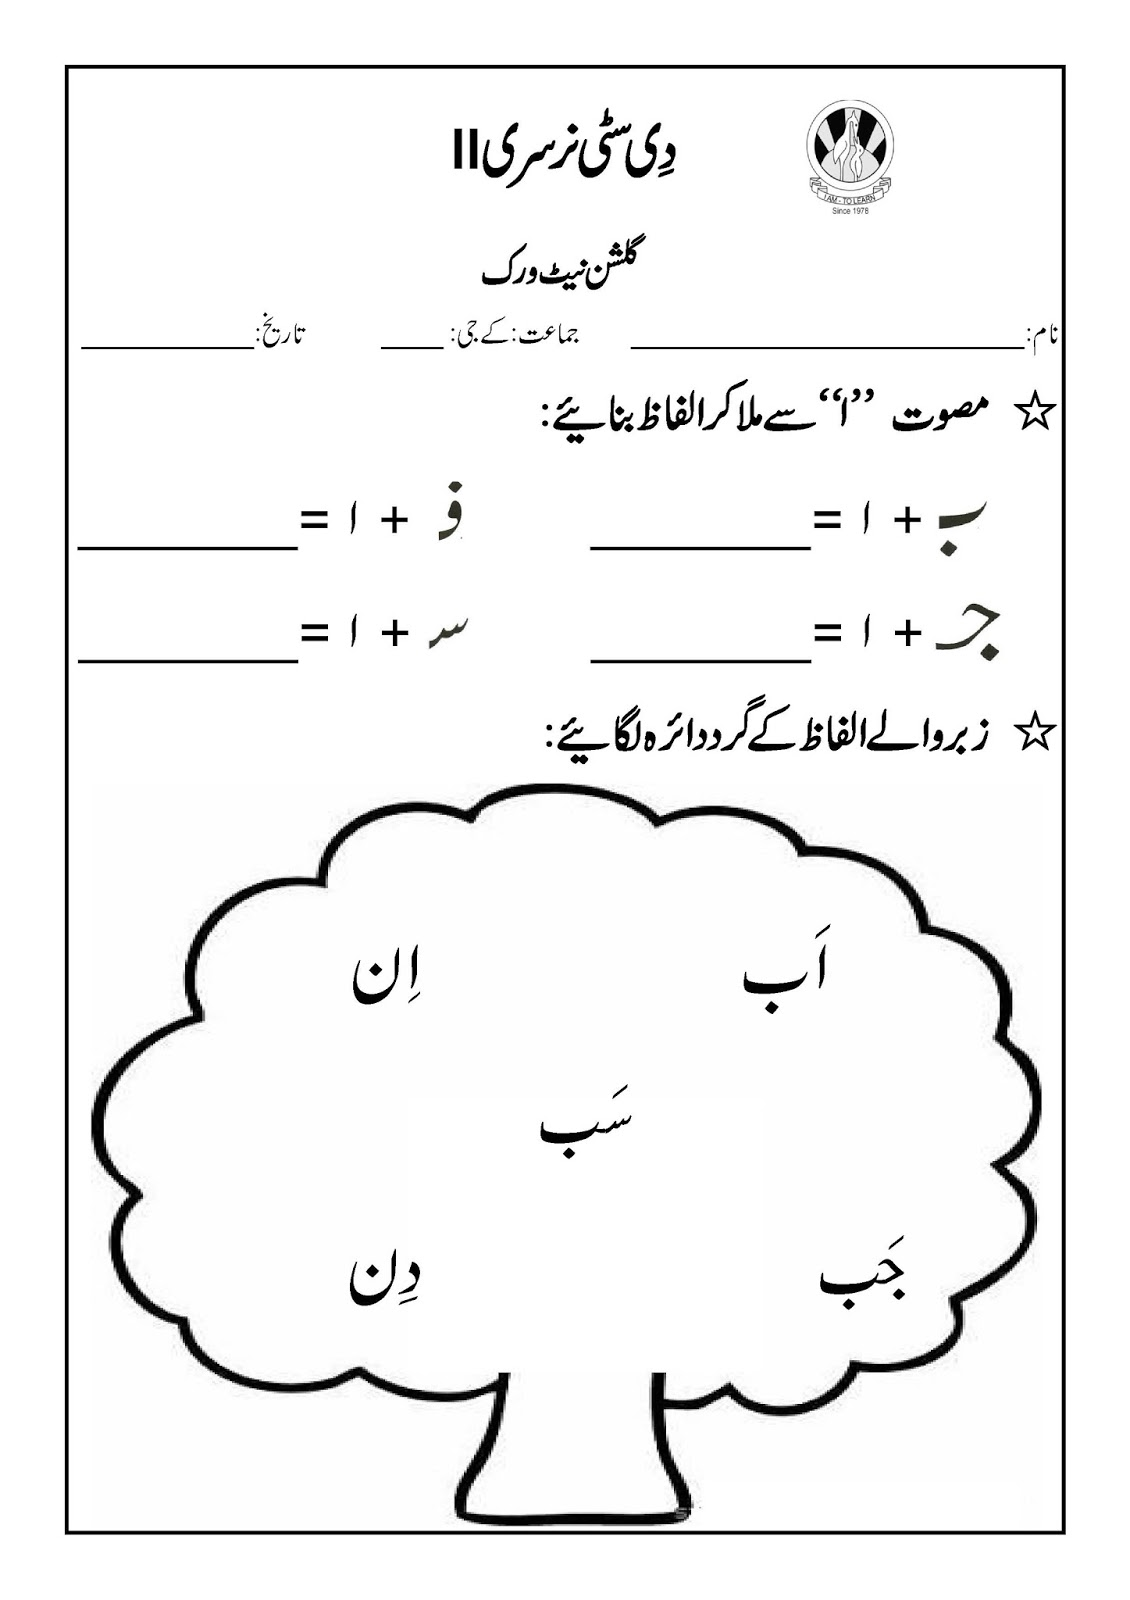 Sr Gulshan The City Nursery Ii Urdu Math Kuwa Ict